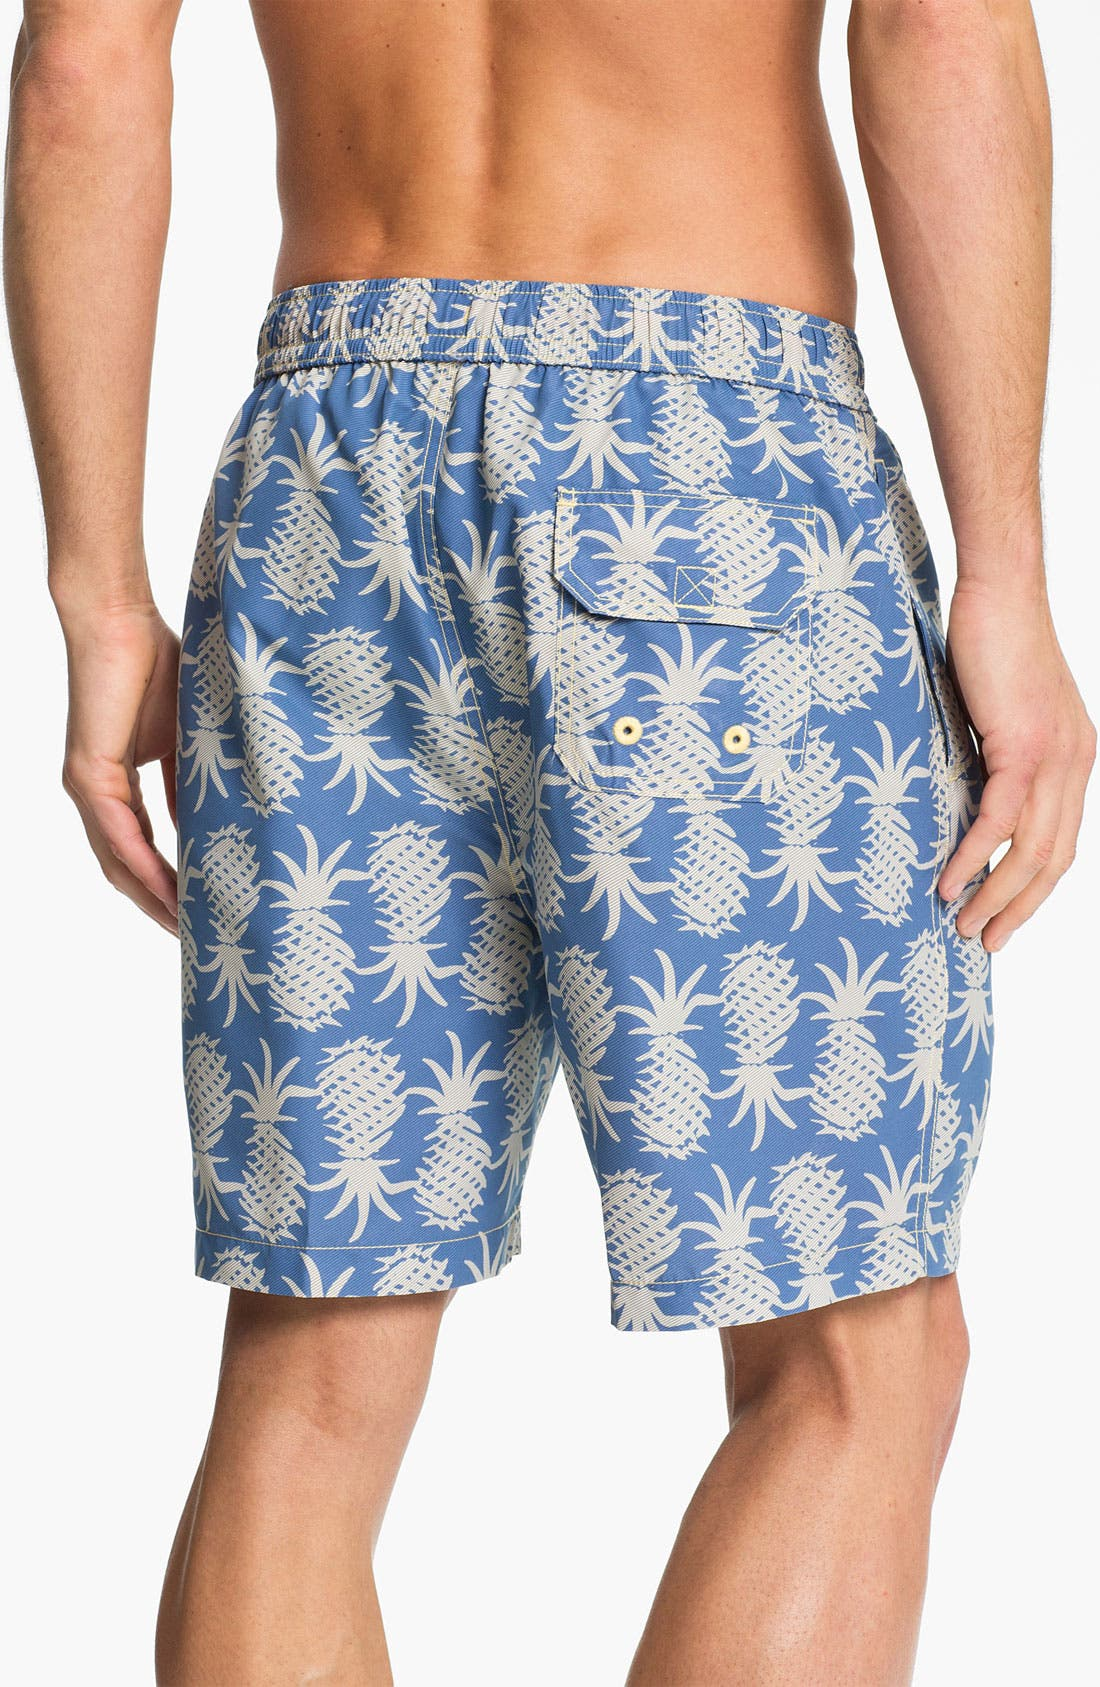 Alternate Image 2  - Tommy Bahama Relax 'Pineapple Upside Down' Swim Trunks